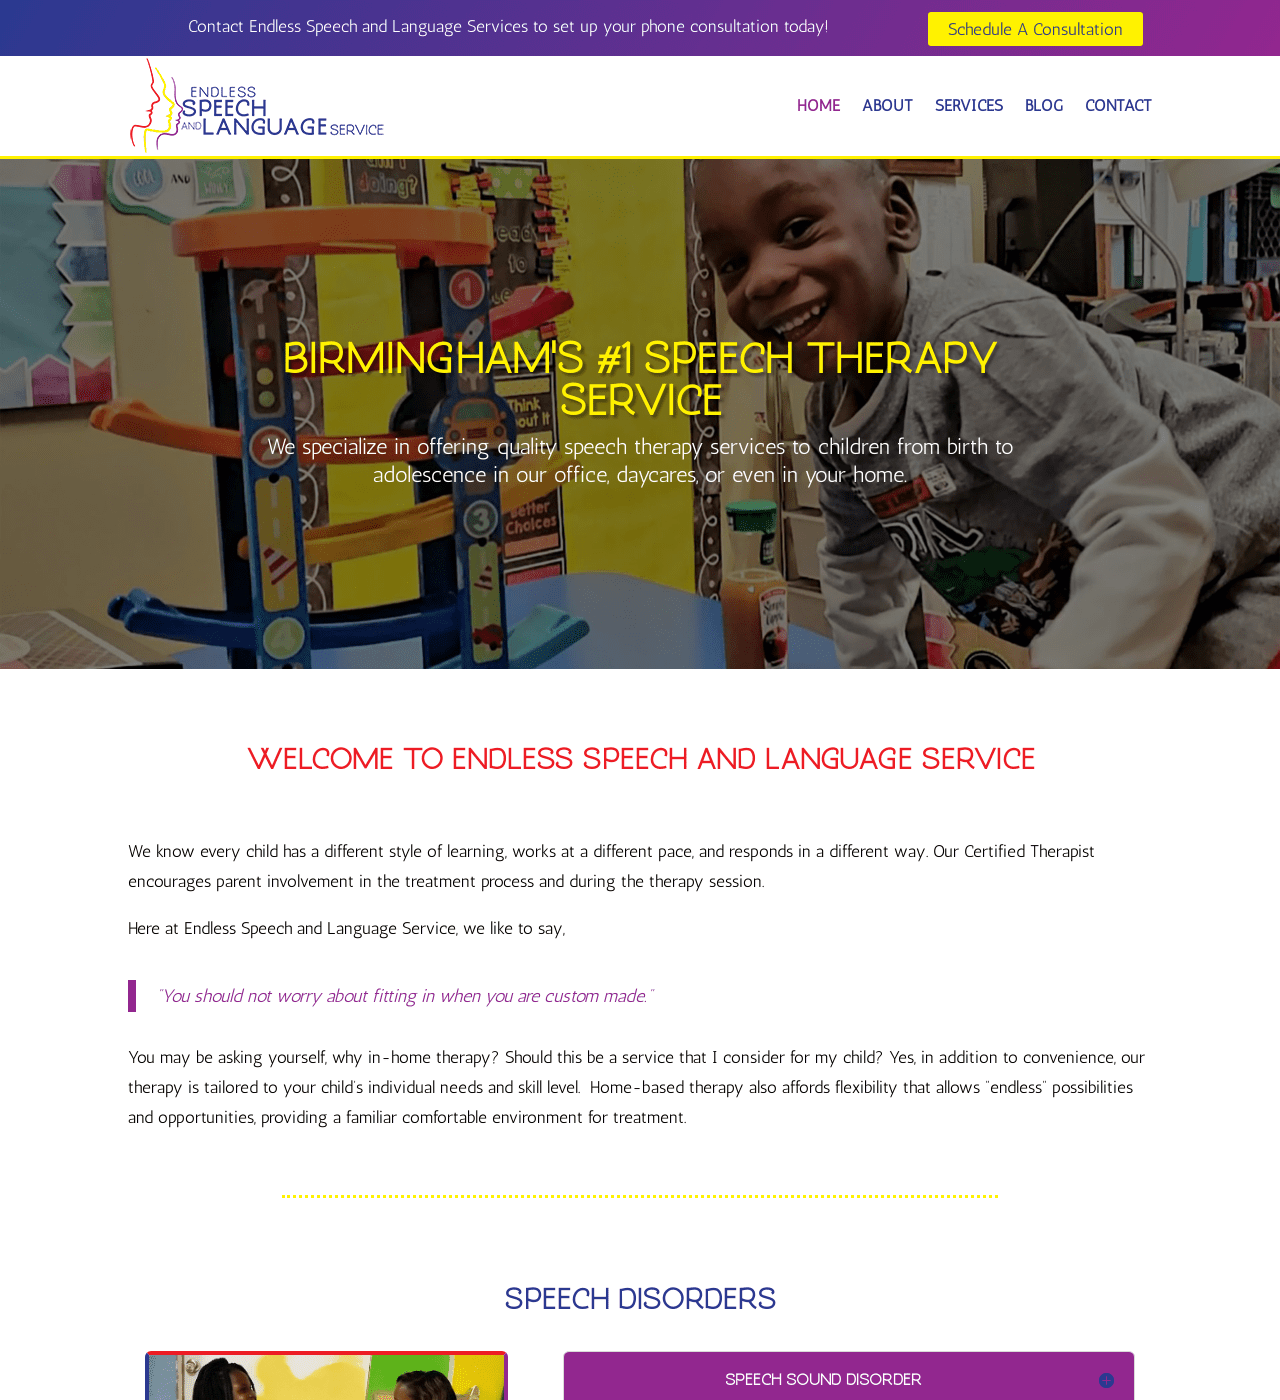 Birmingham-Web-Design-Agency-C-Kinion-Design - Endless - Speech - Language - half page